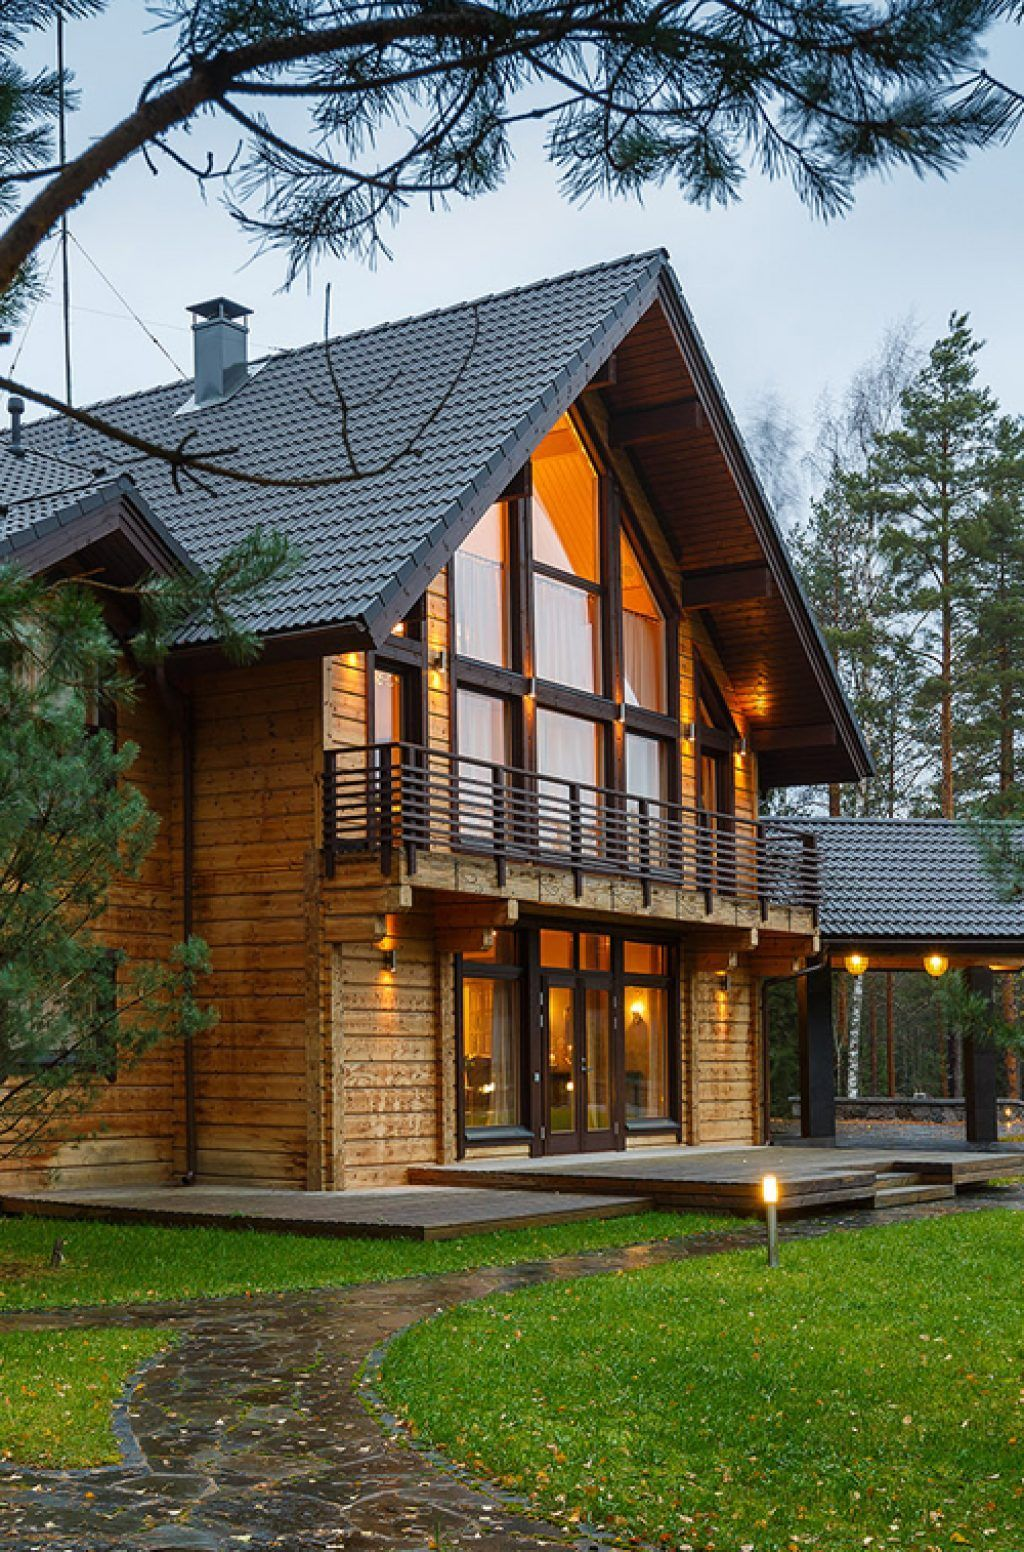 Classic Collection Traditional Scandinavian Style Log Homes For Quality Living Honka Log Homes Scandinavian Style Bedroom Decor On A Budget